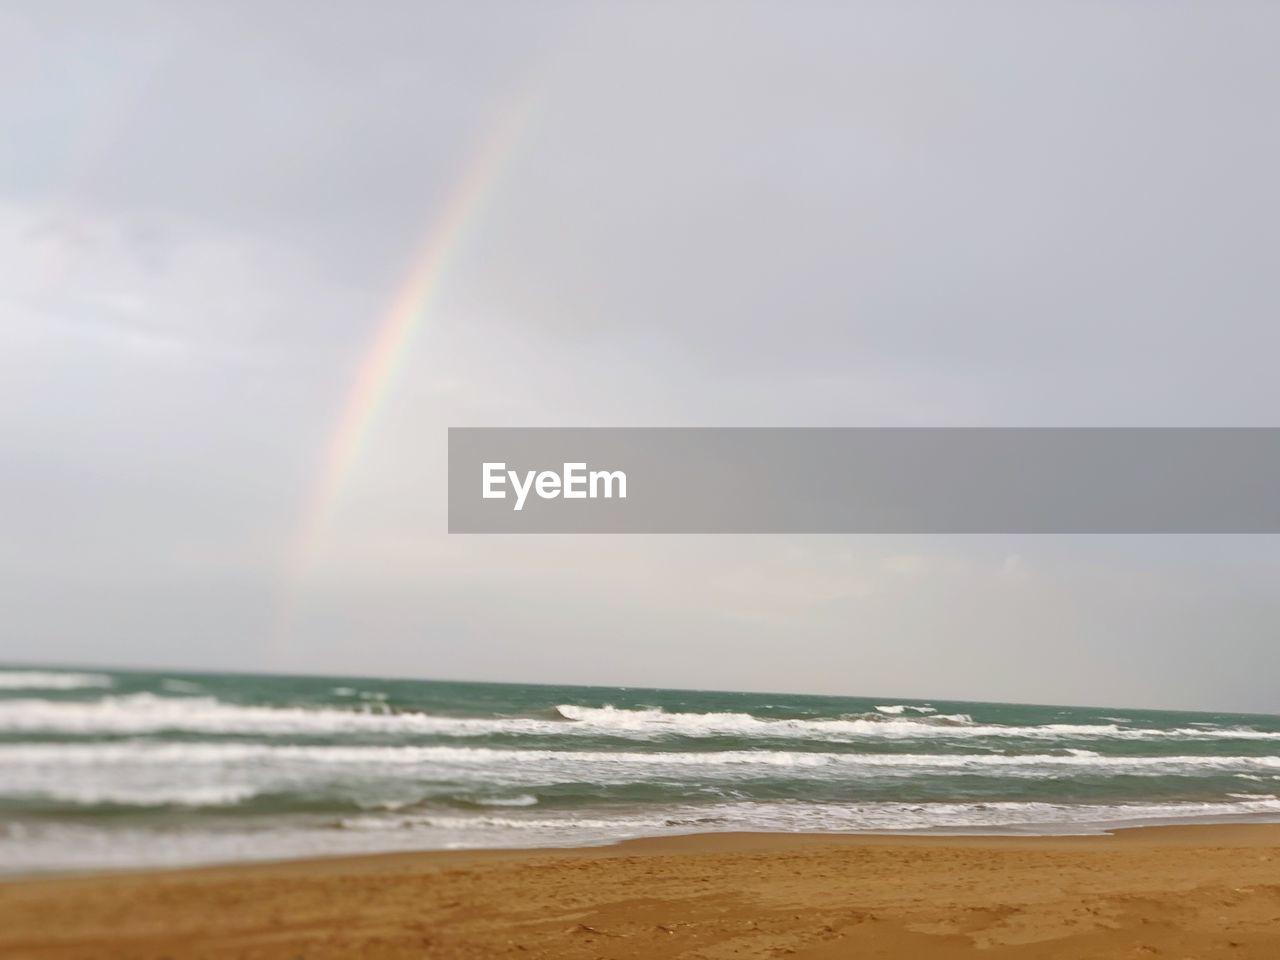 sky, sea, horizon, water, rainbow, horizon over water, beauty in nature, scenics - nature, land, beach, cloud - sky, wave, nature, tranquility, sand, motion, tranquil scene, no people, outdoors, flowing water